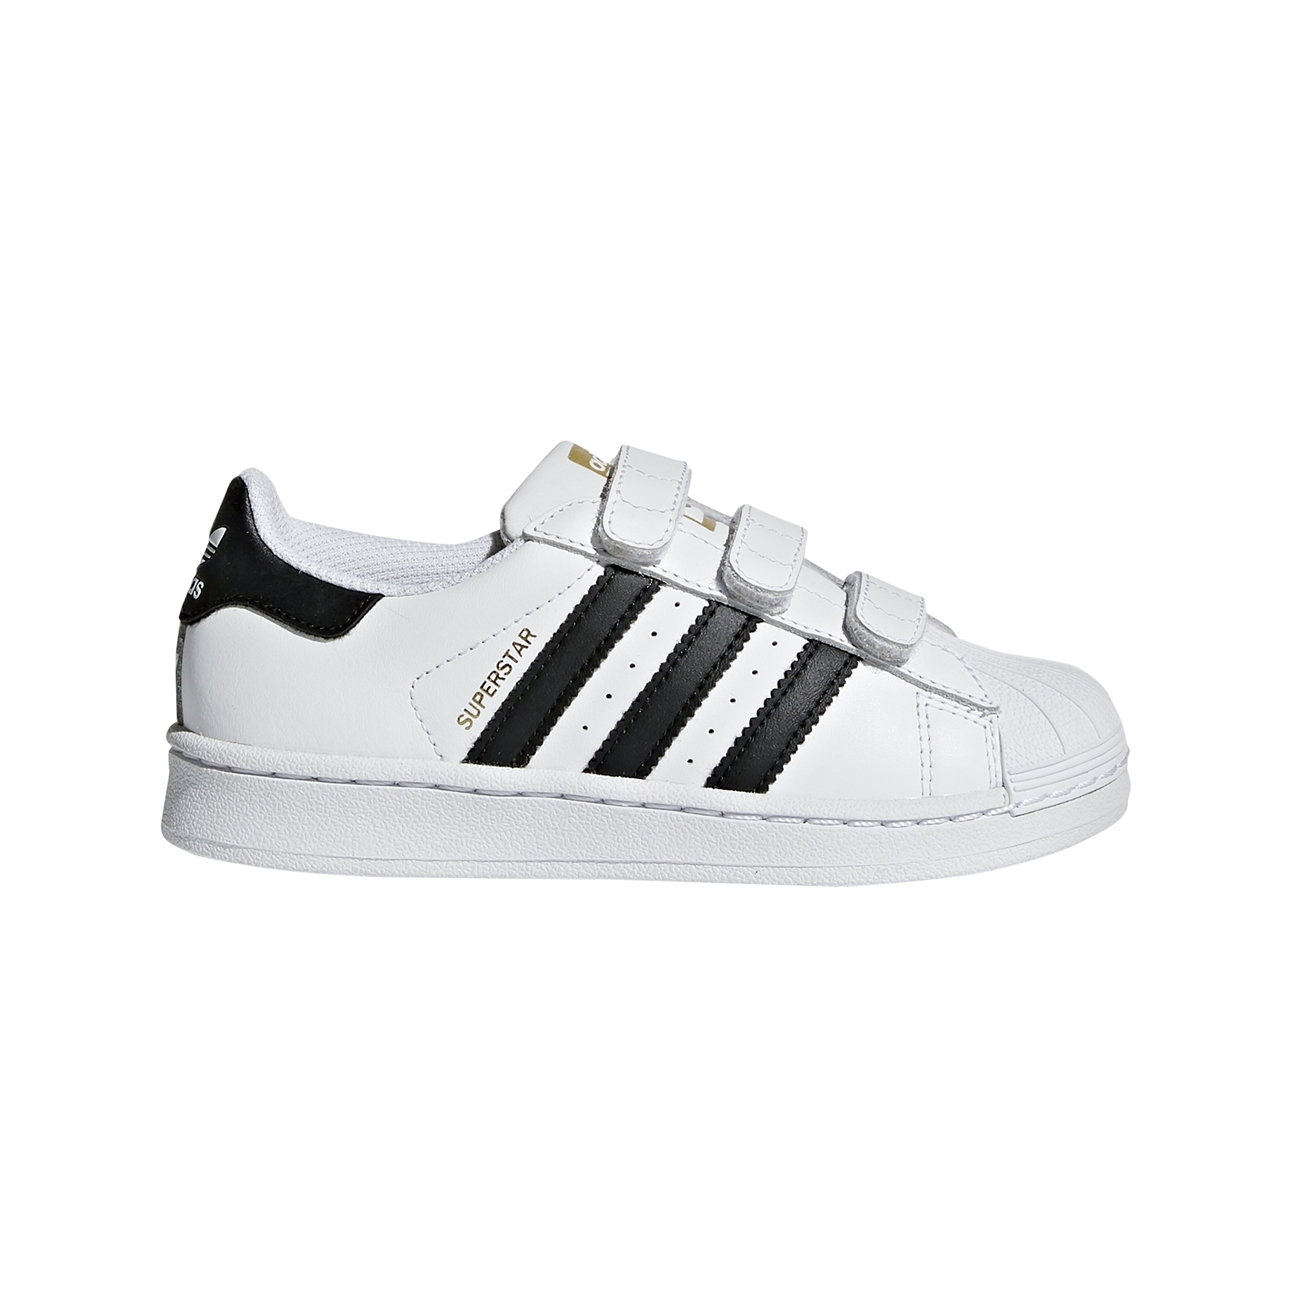 dd76fc588f Adidas Originals Superstar Foundation CF C